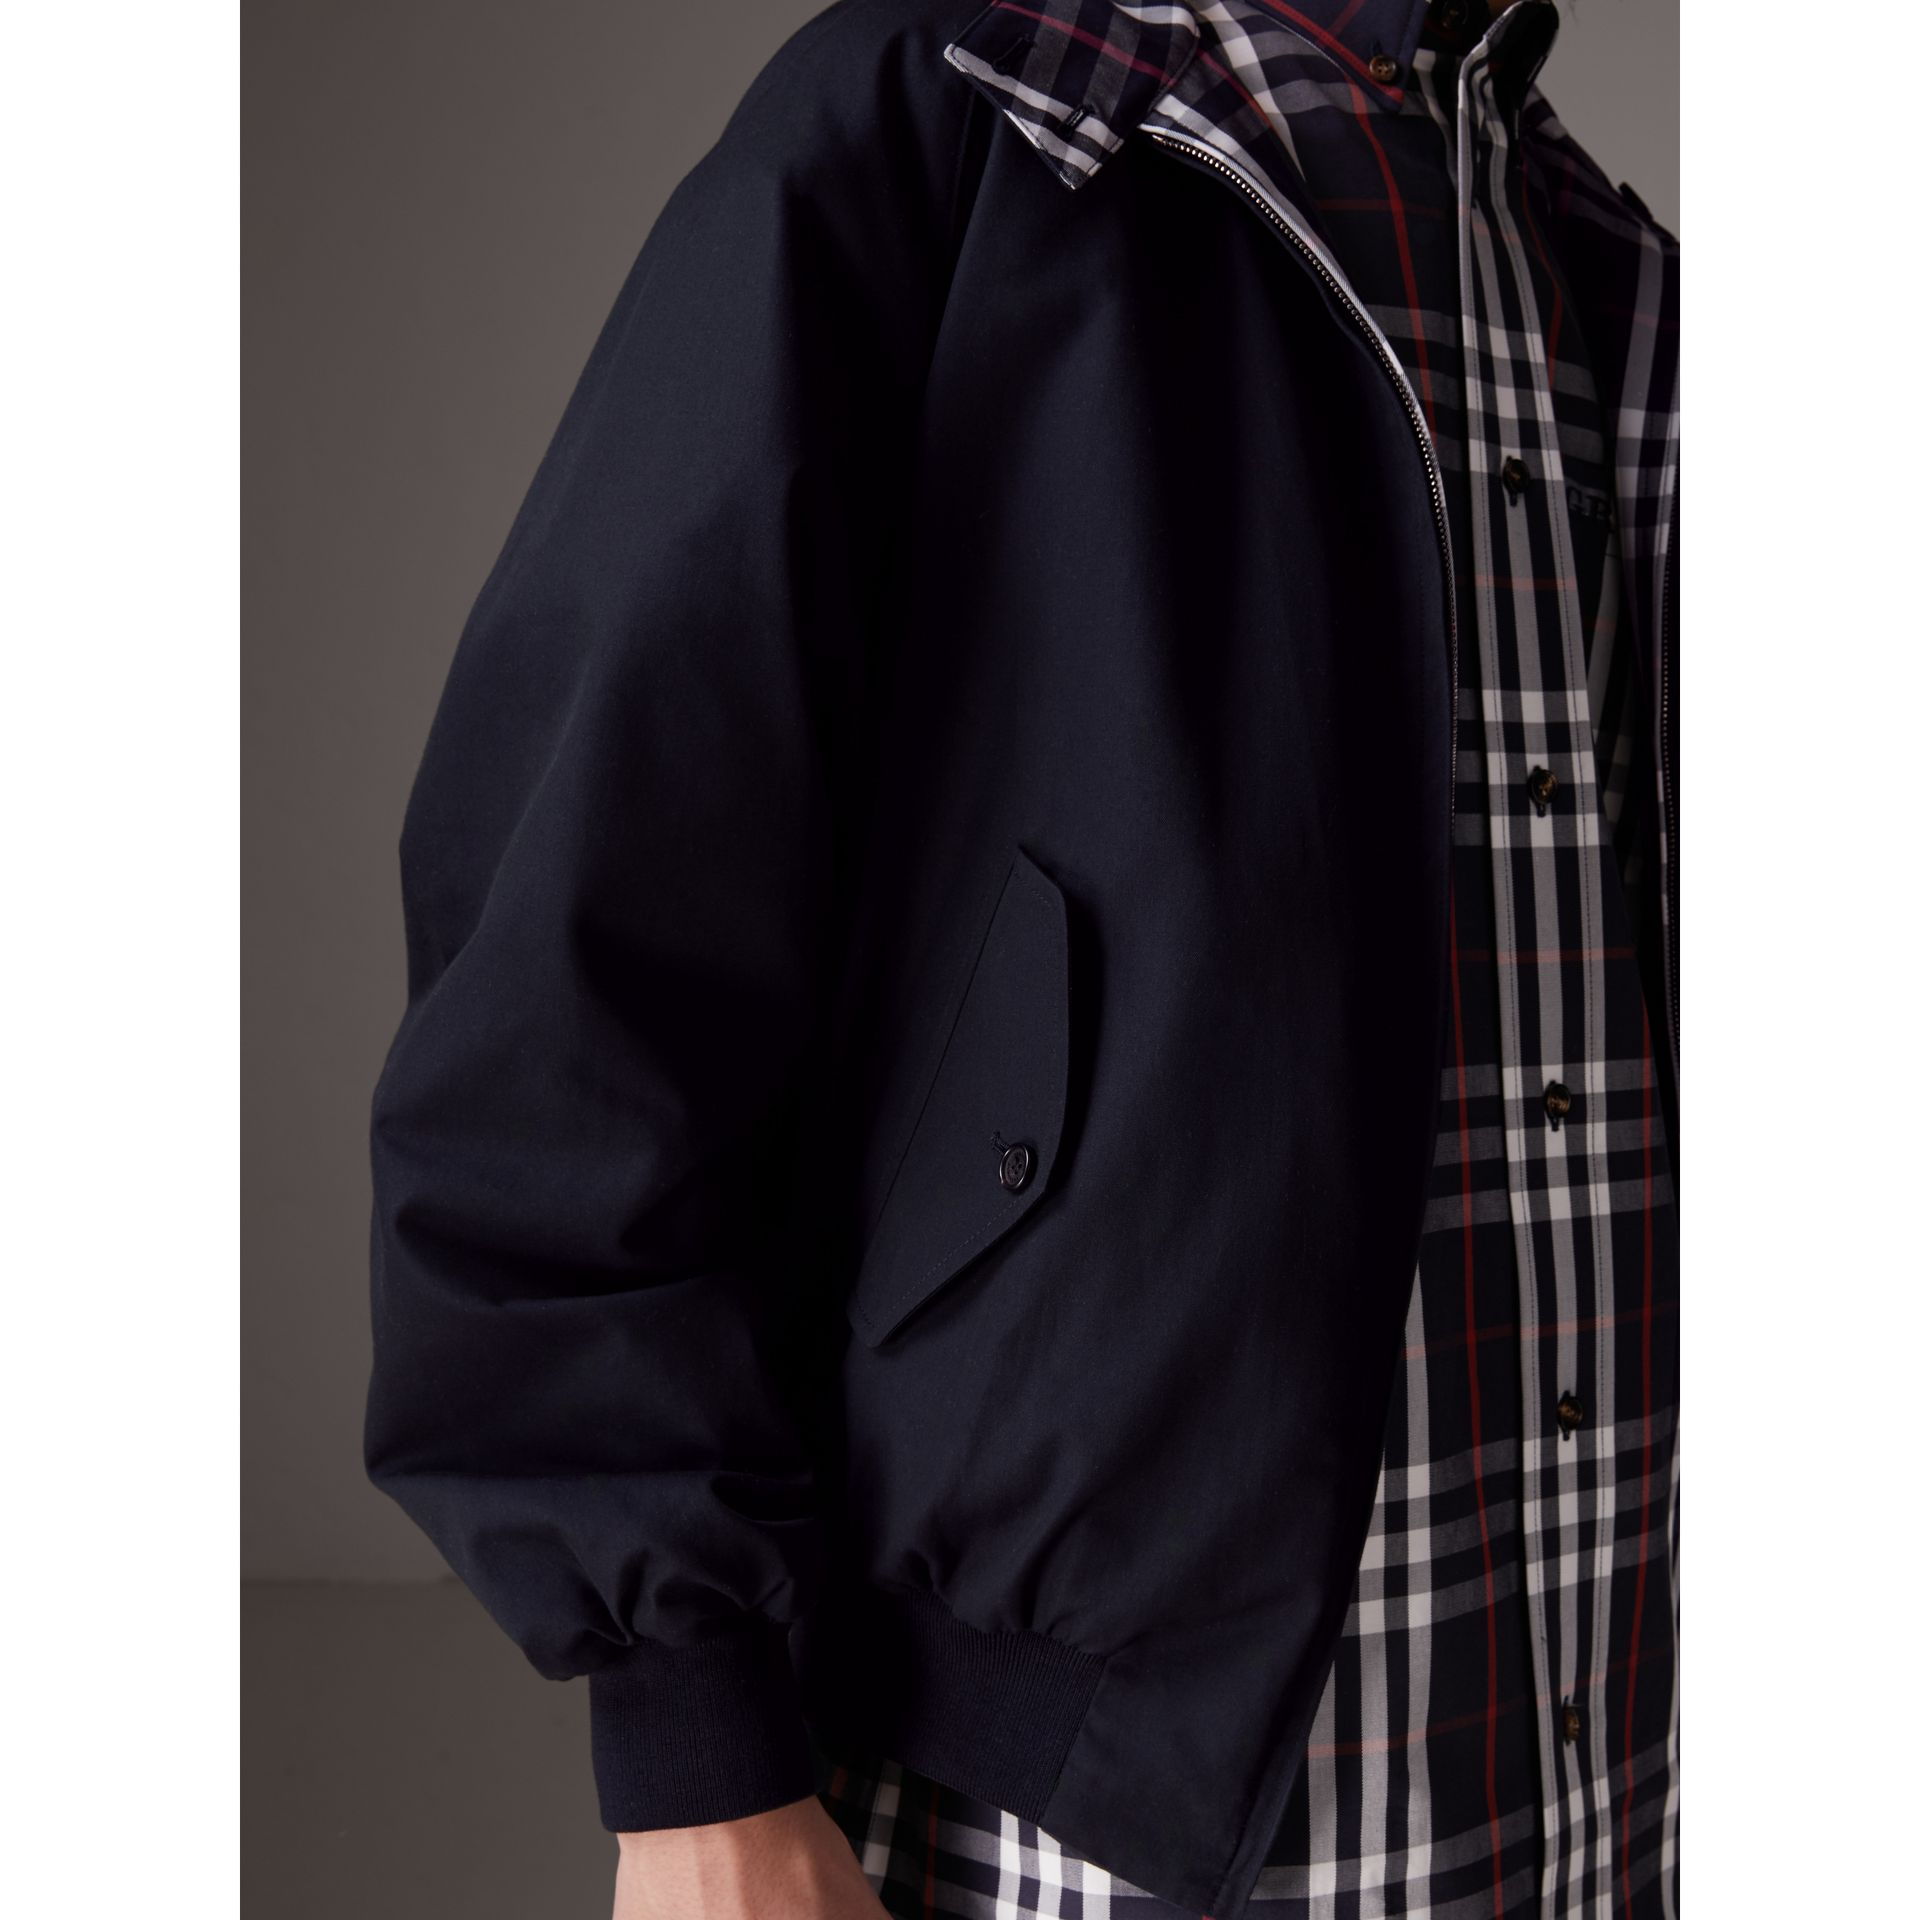 Veste Harrington réversible Gosha x Burberry (Marine) - Homme | Burberry Canada - photo de la galerie 1